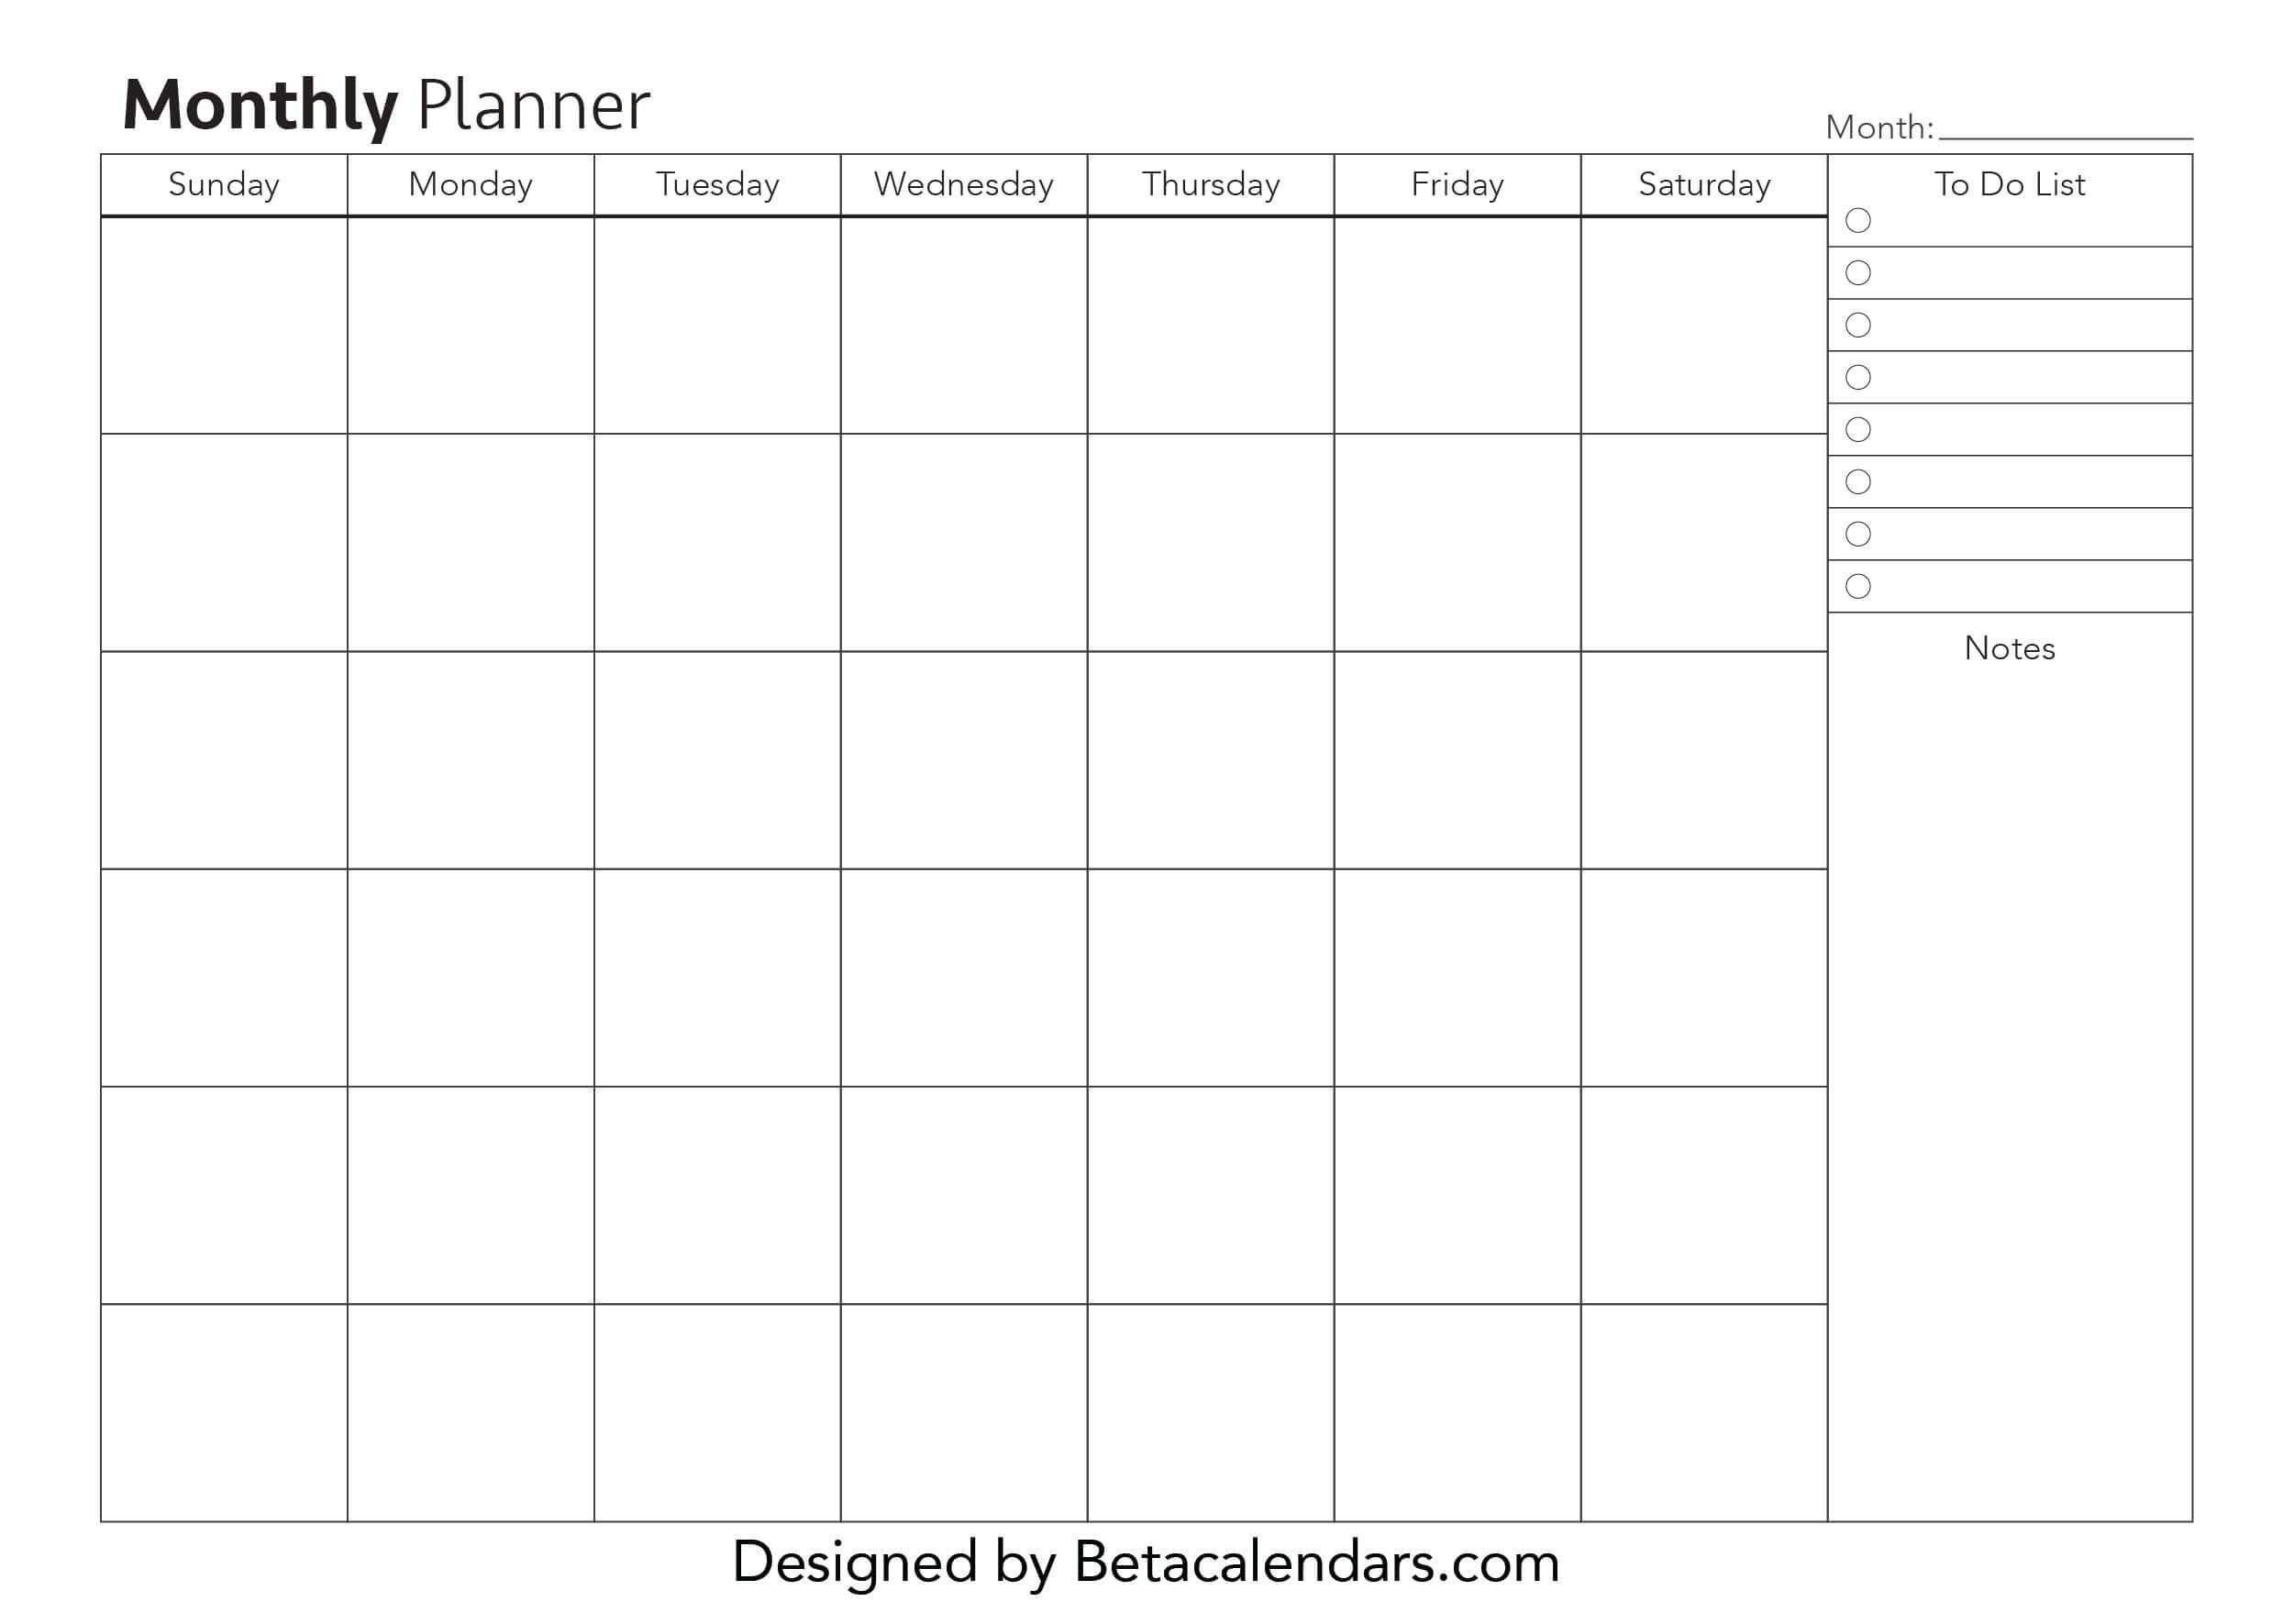 Free Monthly Planner In 2020 | Monthly Planner Template  Monthly Planner